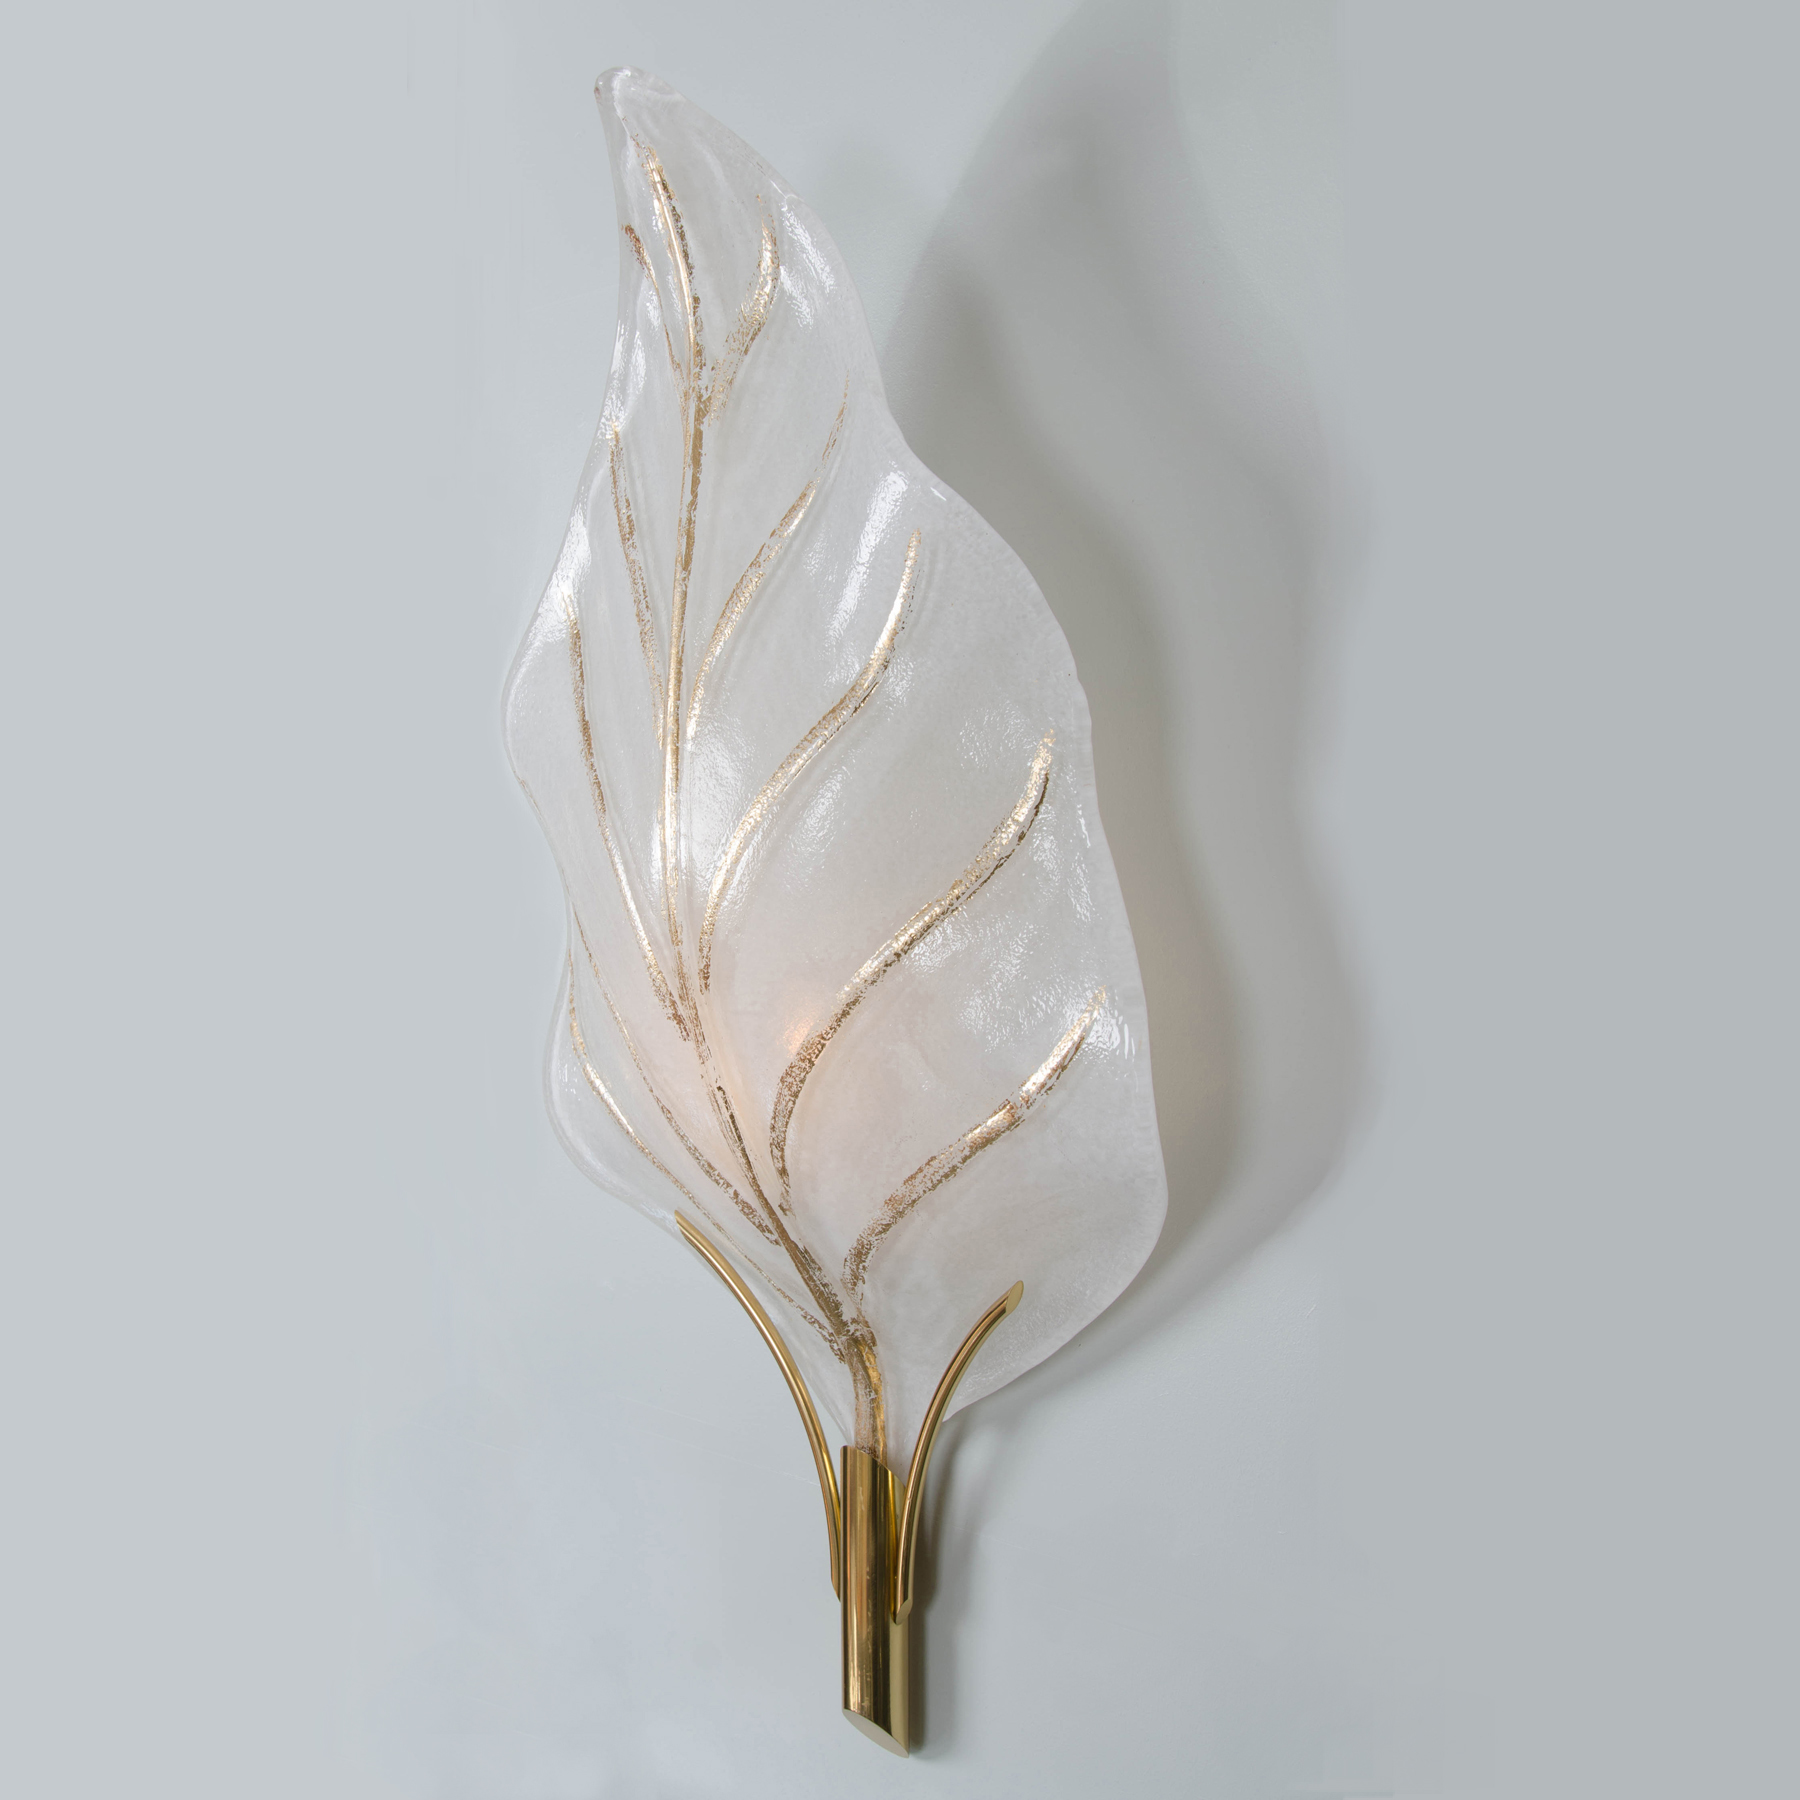 Valerie Wade Lw362 Murano Glass Leaf Wall Lights 04